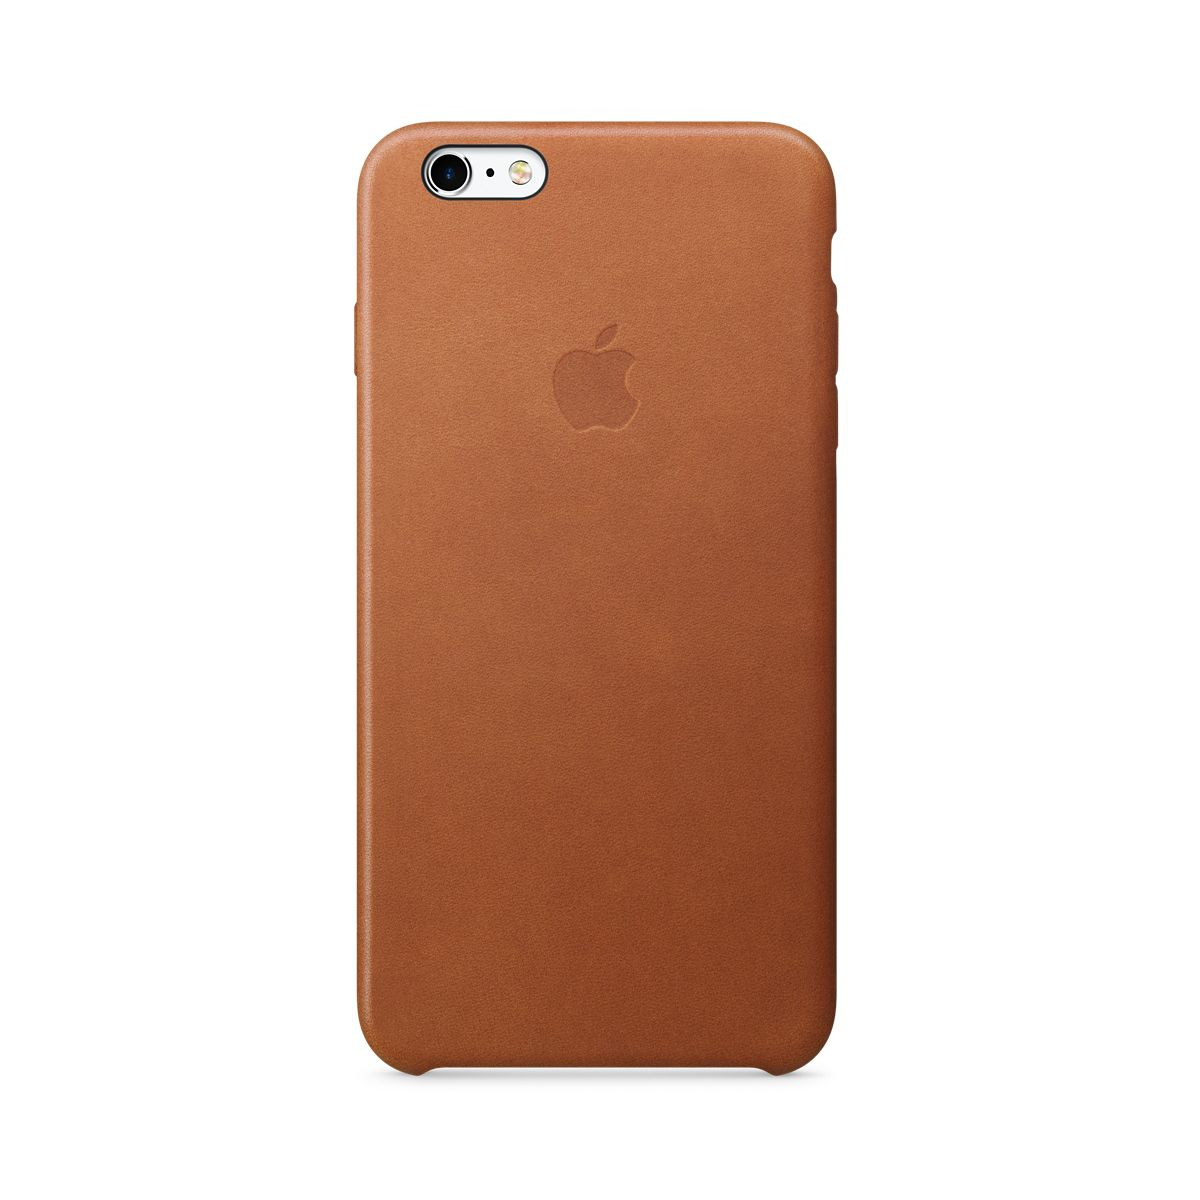 Coque APPLE iPhone 6/6s Plus Cuir Havane